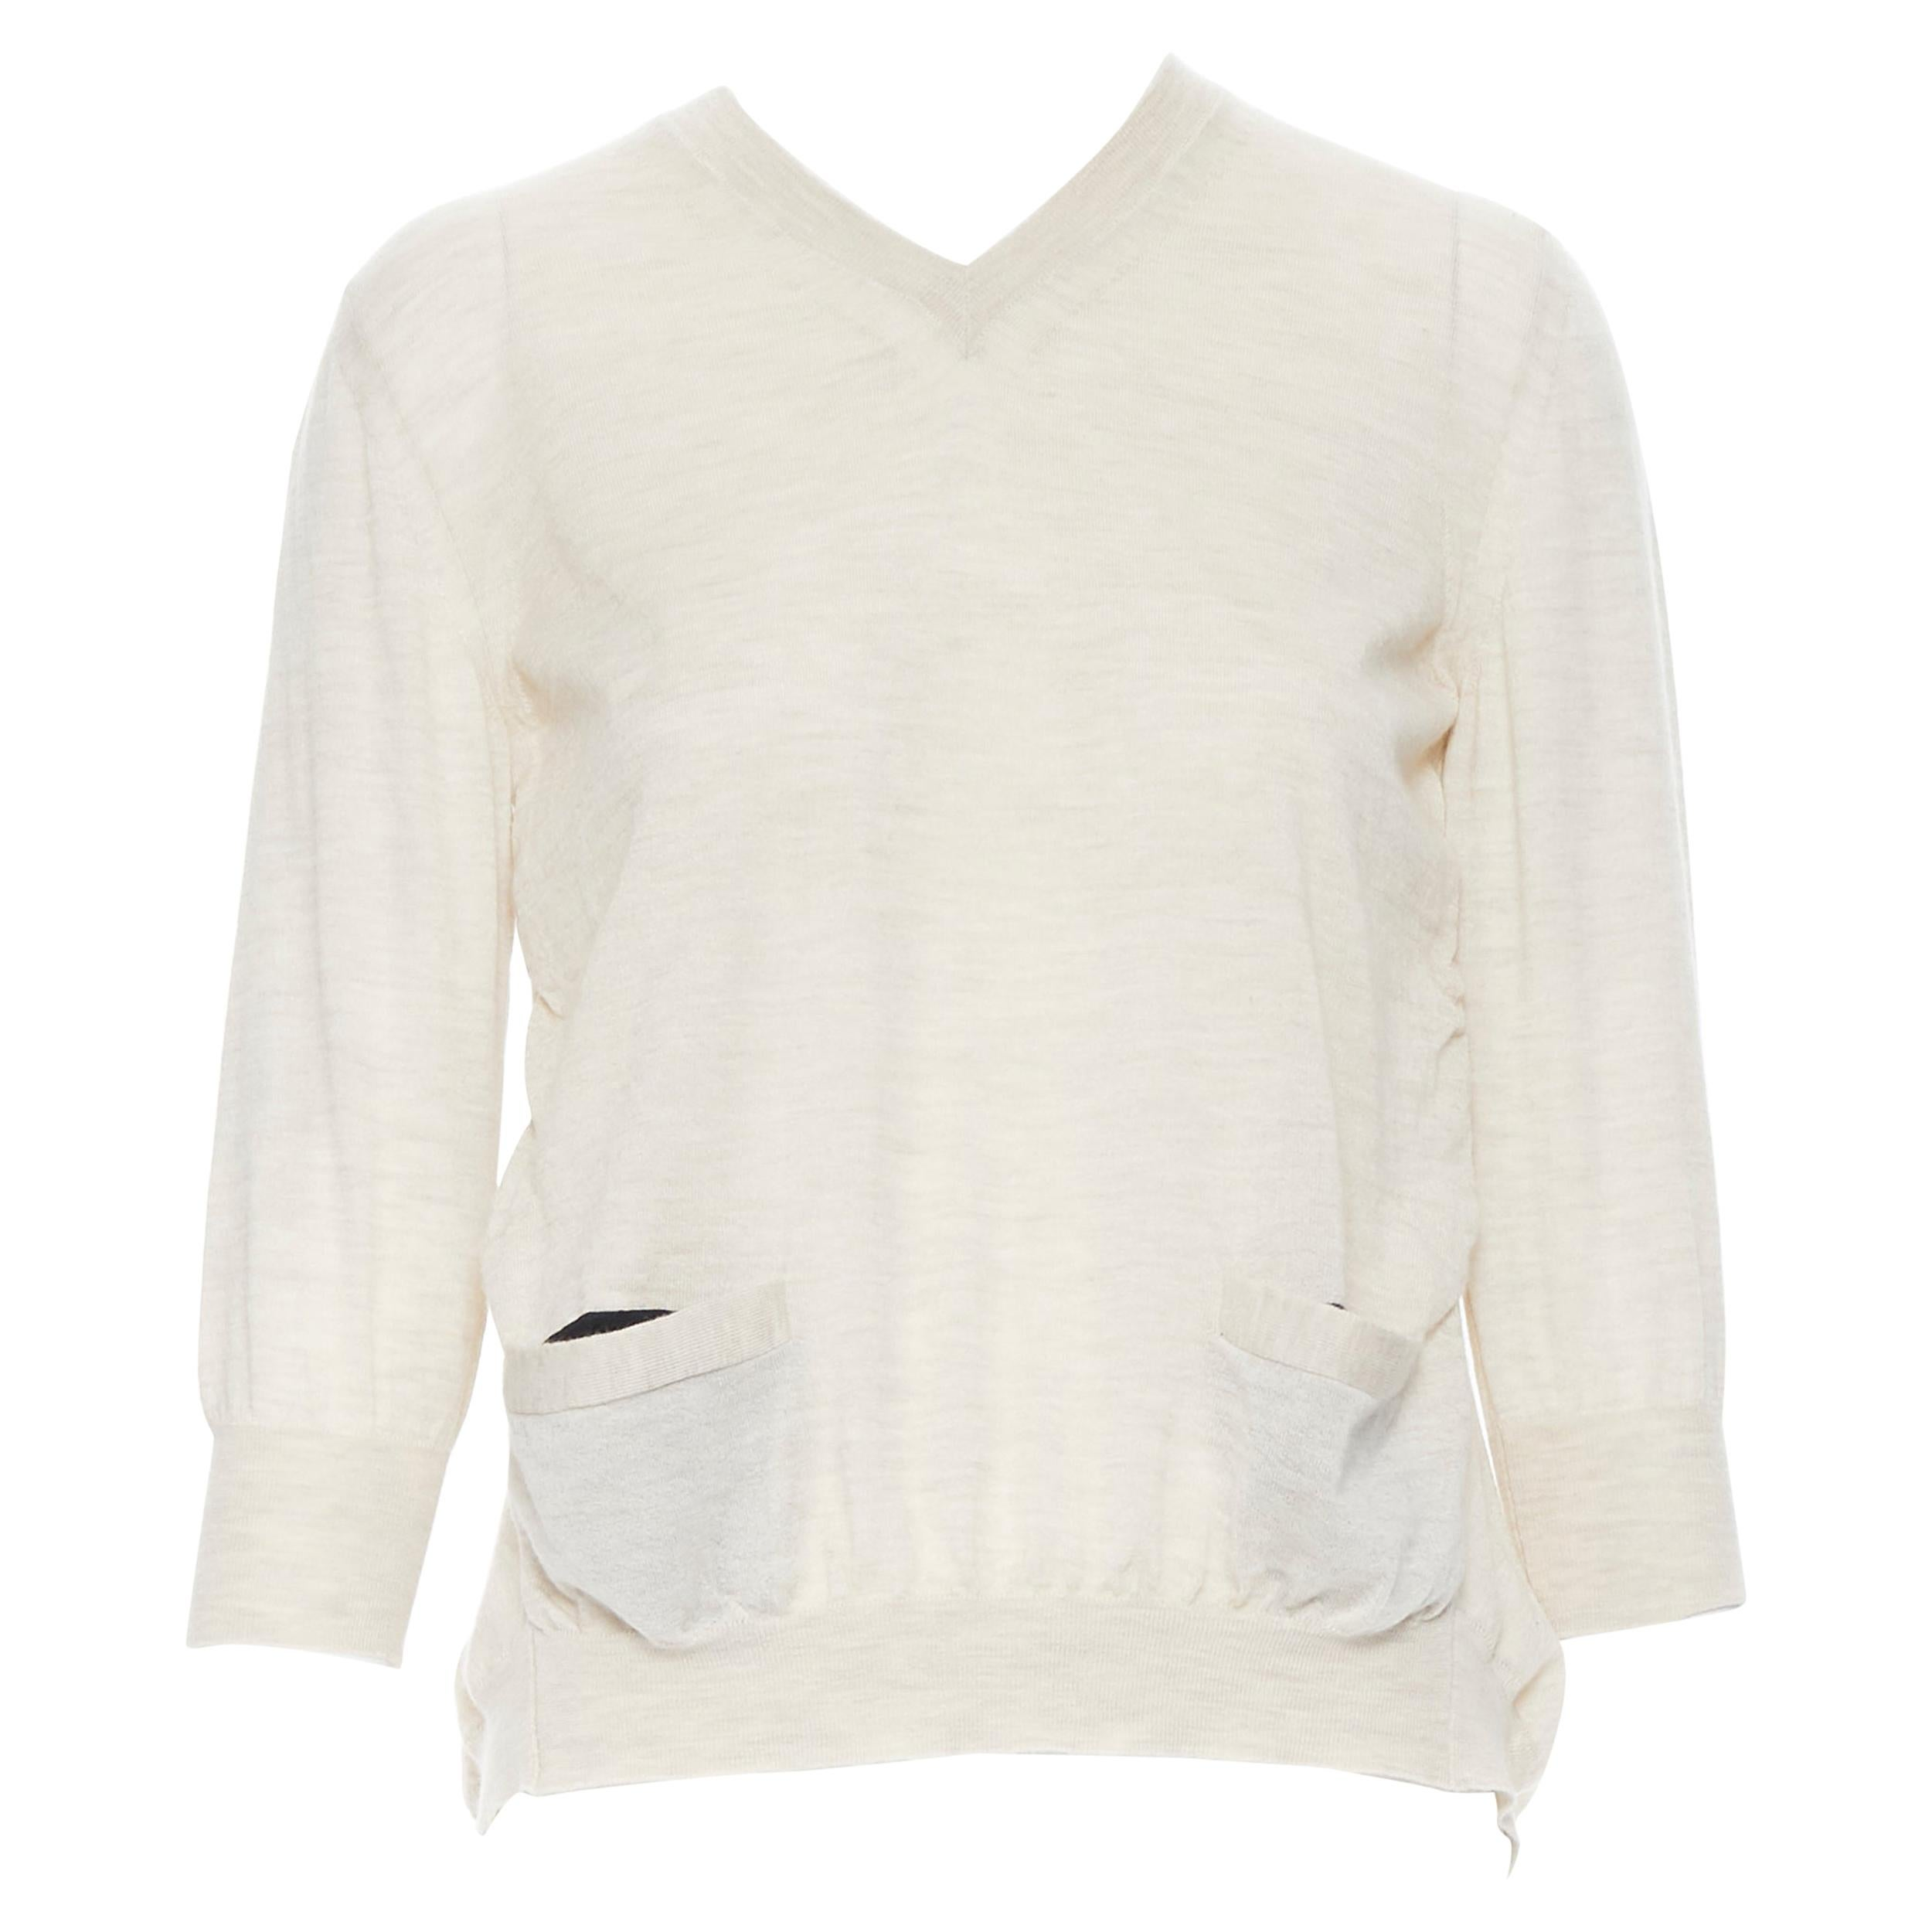 MARNI cashmere blend beige dual front pocket 3/4 sleeve sweater top IT38 XS